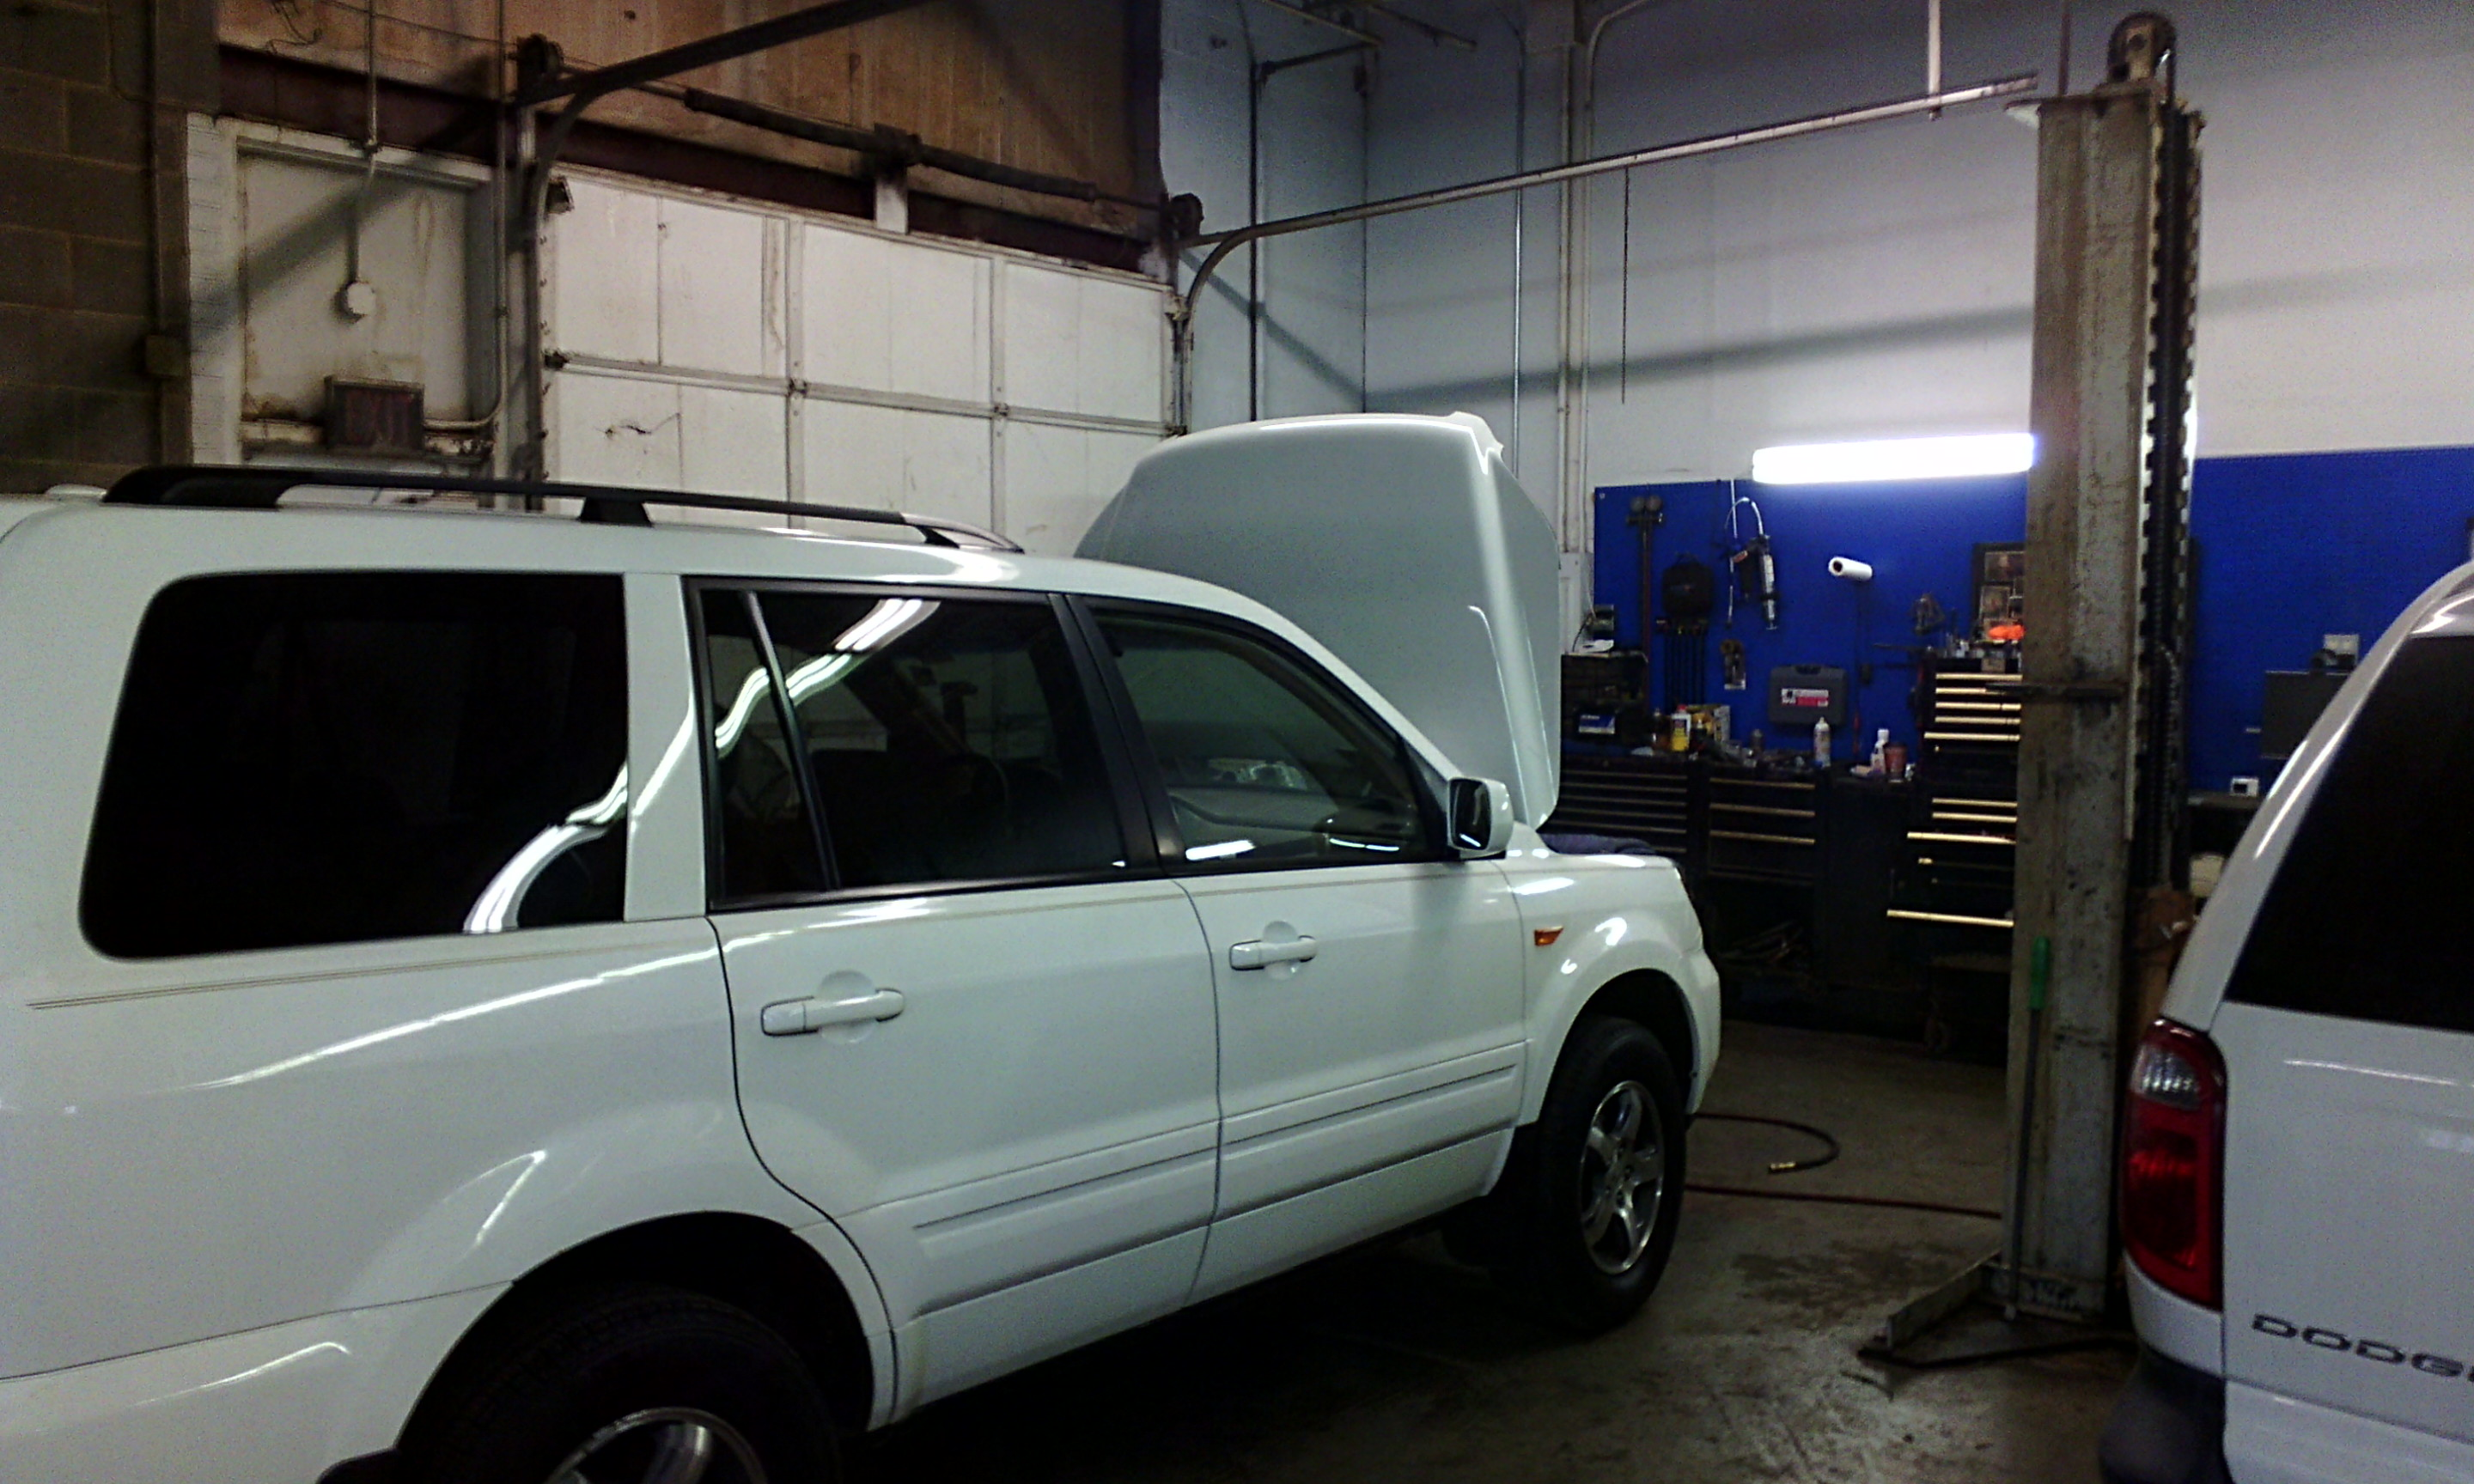 University Foreign Car sells & installs tires in St. Louis, Missouri.